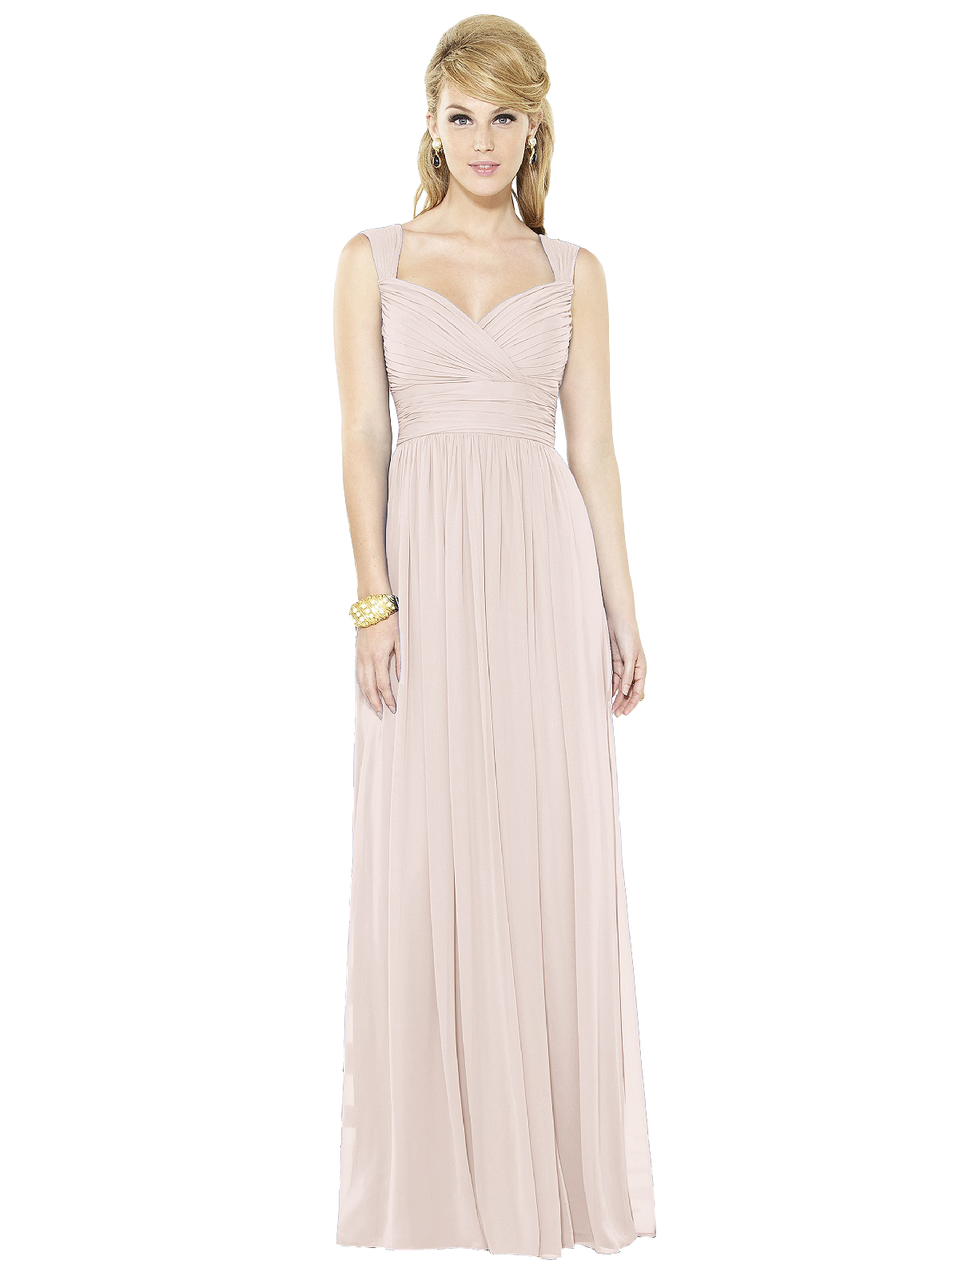 f6b7971bb8 After Six Bridesmaids Style 6712 Full length lux chiffon dress with  sweetheart neckline and pleated straps